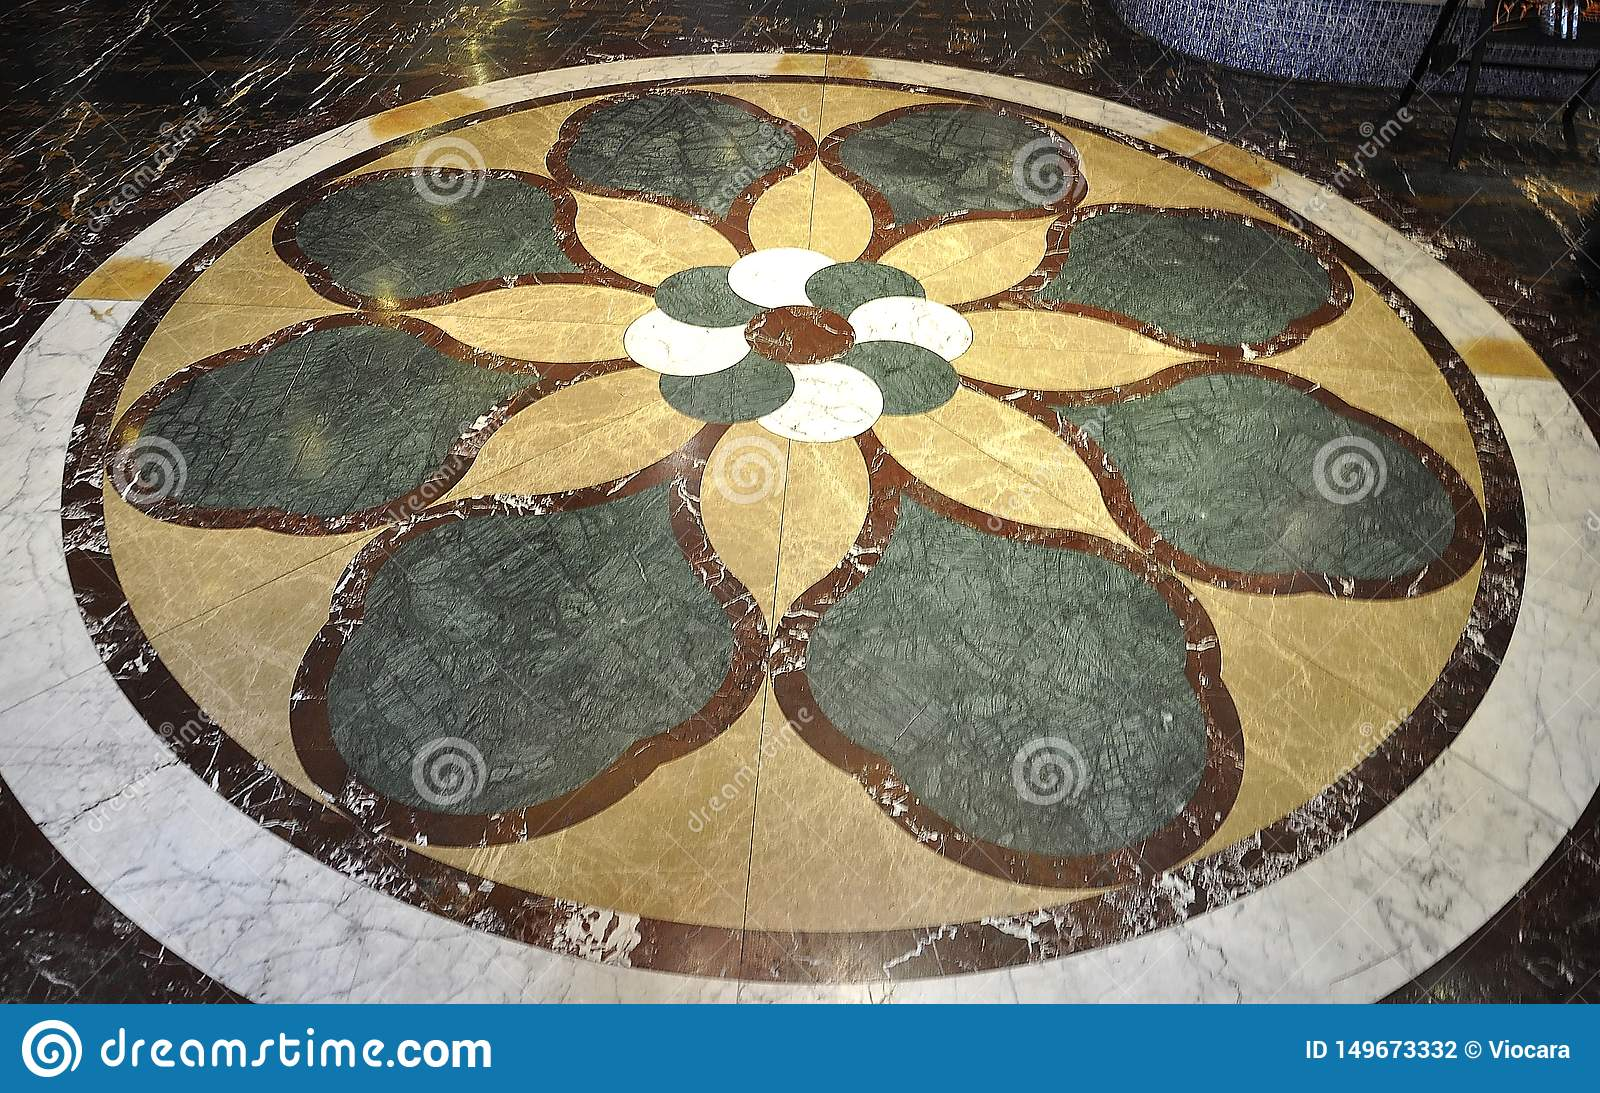 Marble Floor Design In A Chinese Hotel Lobby Editorial Photography Image Of Colorful Decoration 149673332